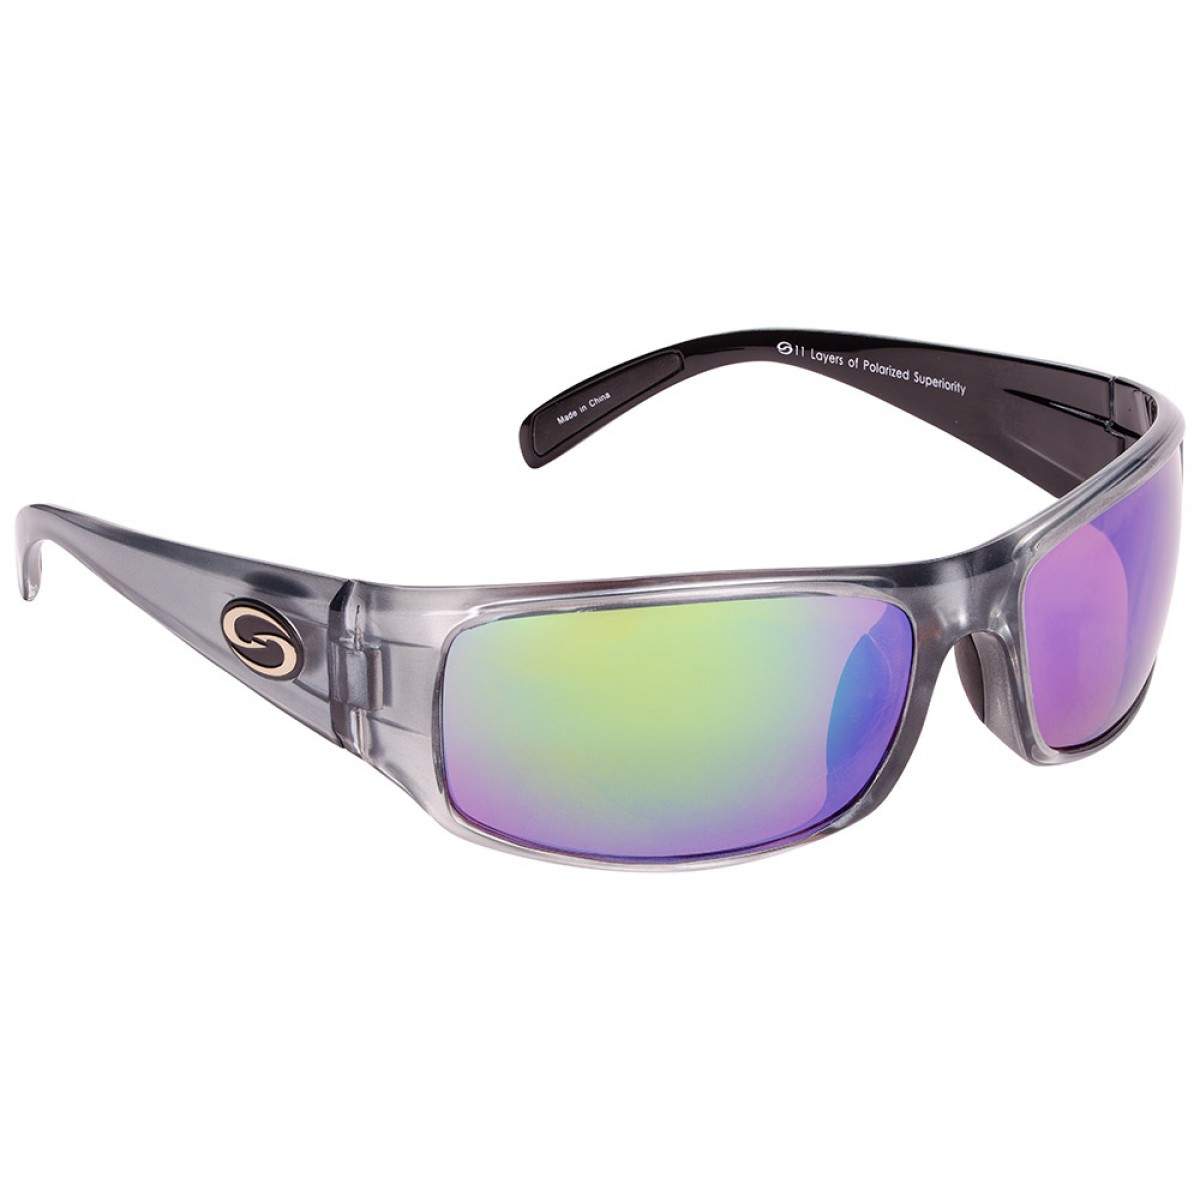 191f43d5d8 Strike King S11 Sunglasses